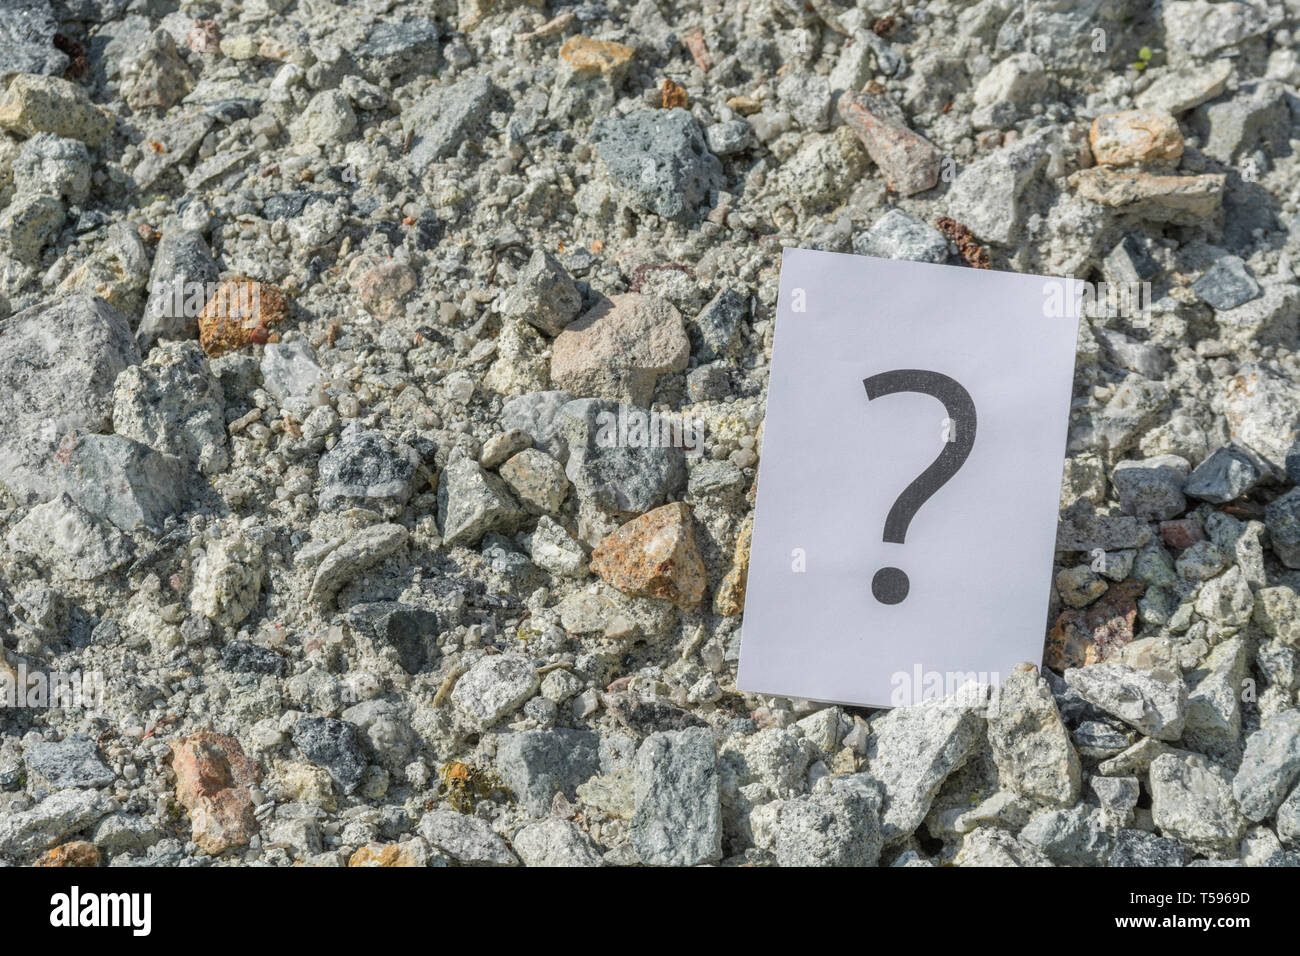 Abstract Question mark in sunlight on sunny day. Metaphor 'truth is out there', to question, answers wanted, meaning of life, searching for truth. - Stock Image